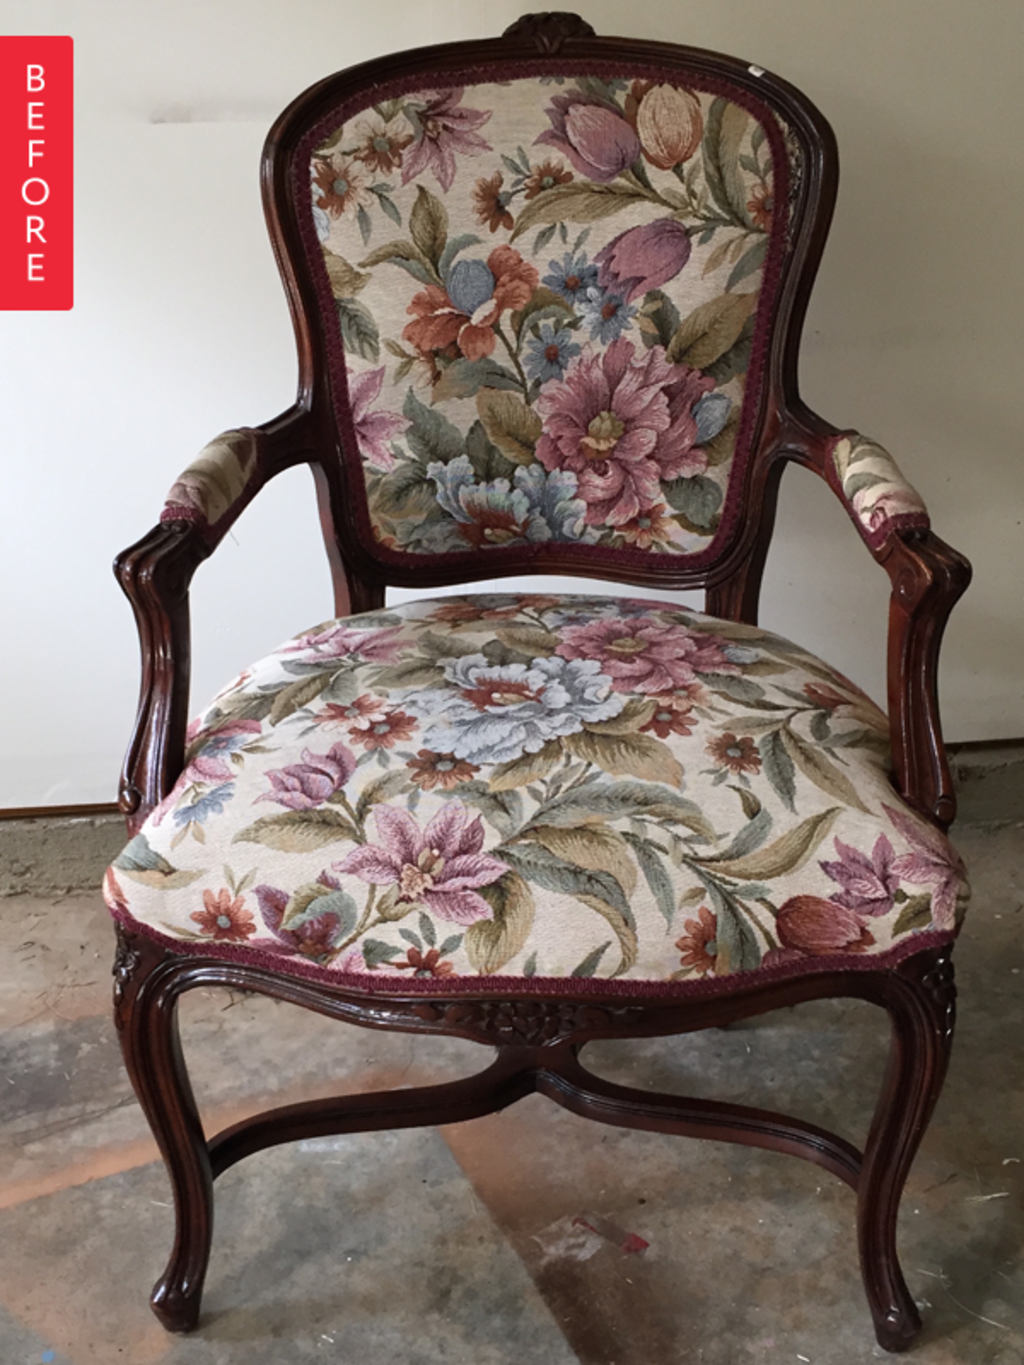 Before & After: Louis Chair Gets a Royal Makeover